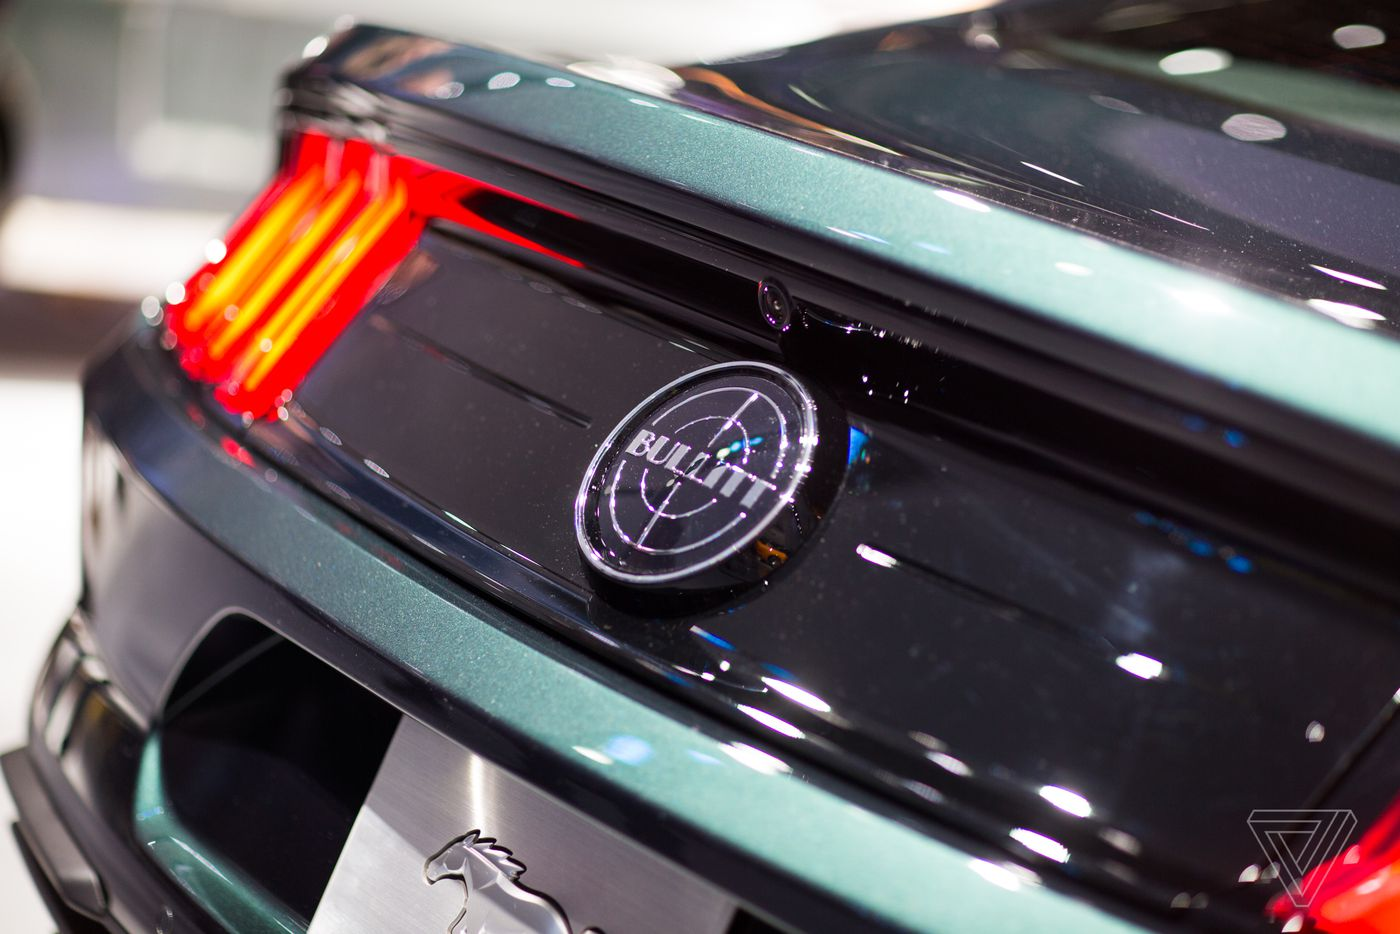 The Return Of Ford Mustang Bullitt Tugs At Auto Heart Strings Verge